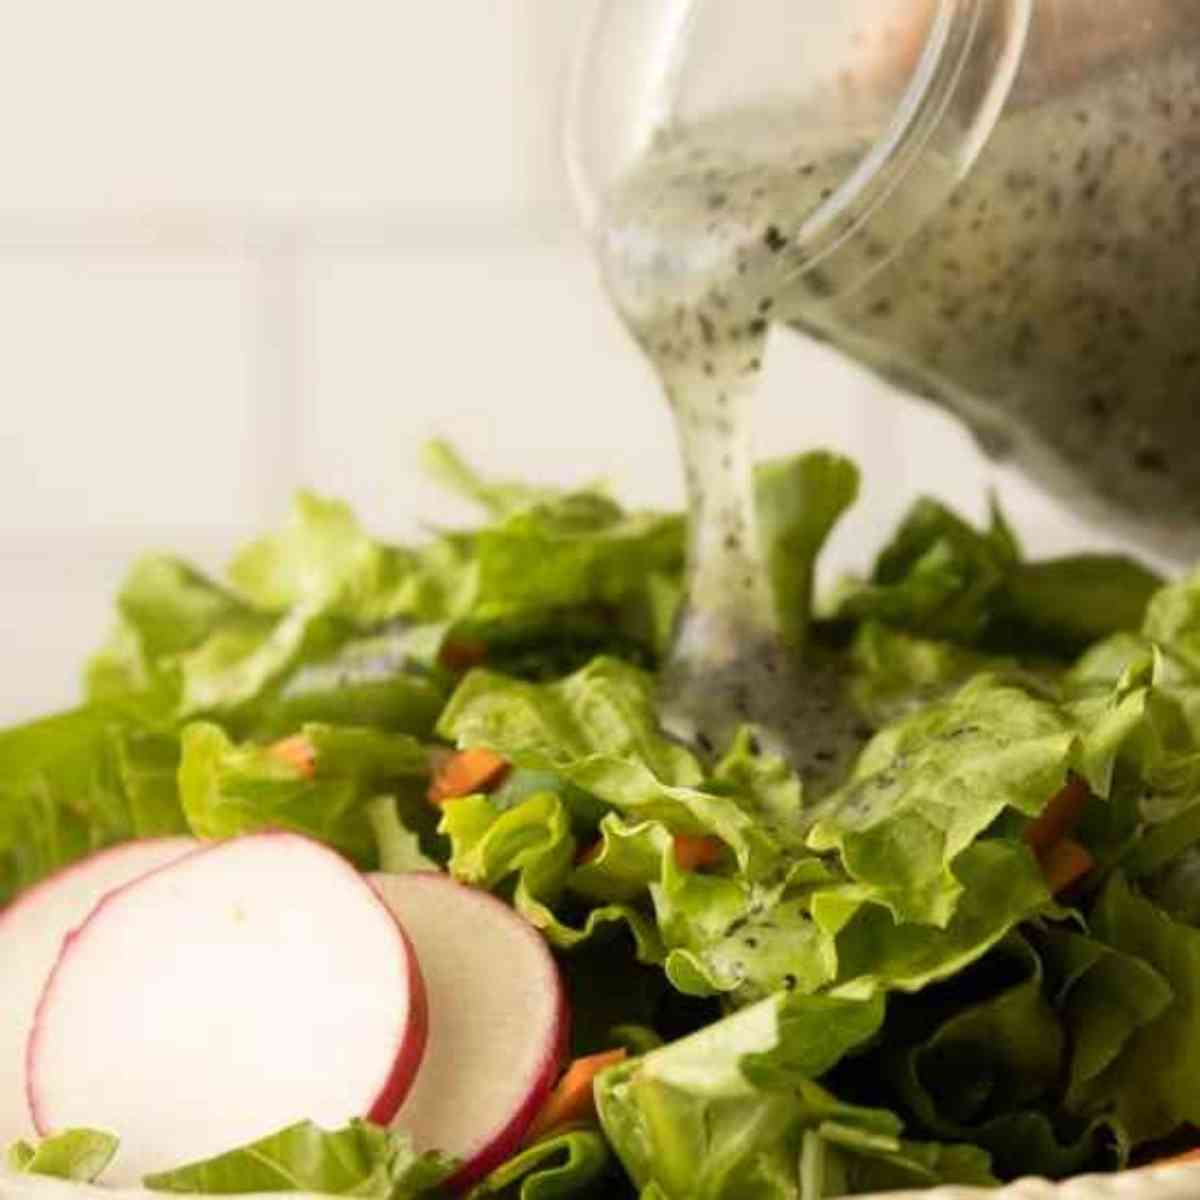 Poppy seed dressing drizzled over green salad.